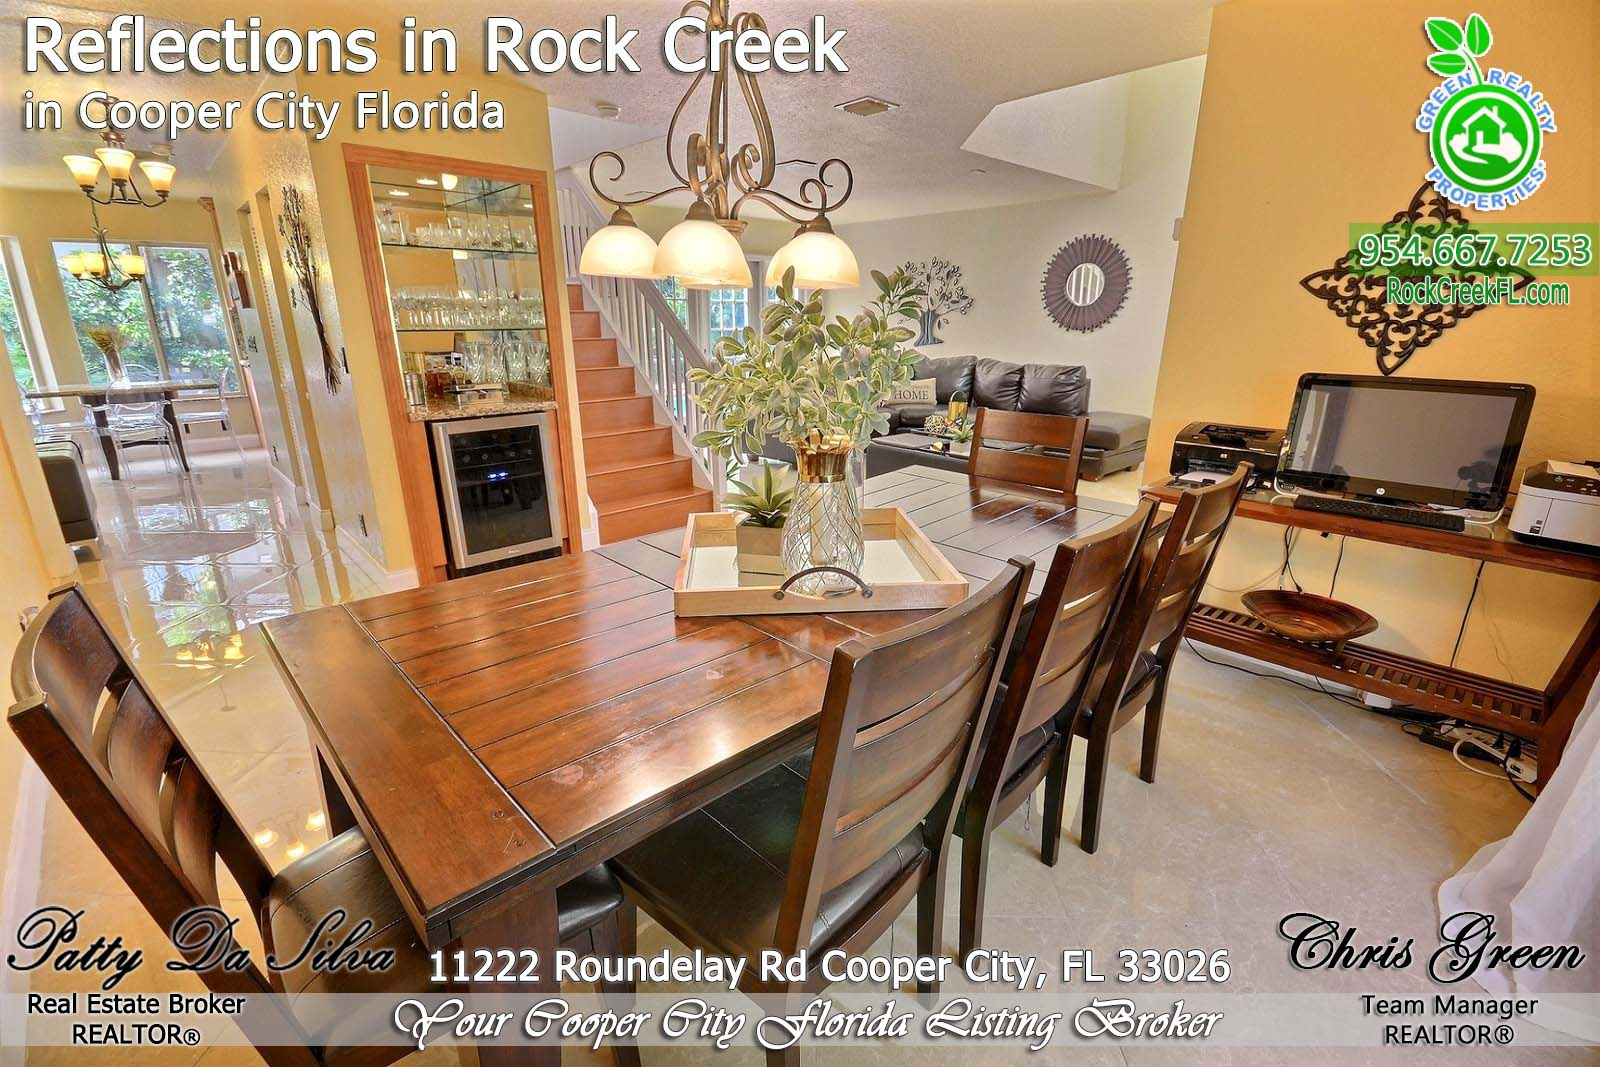 Cooper City Homes For Sale - Reflections in Rock Creek Homes Fo Sale (20)